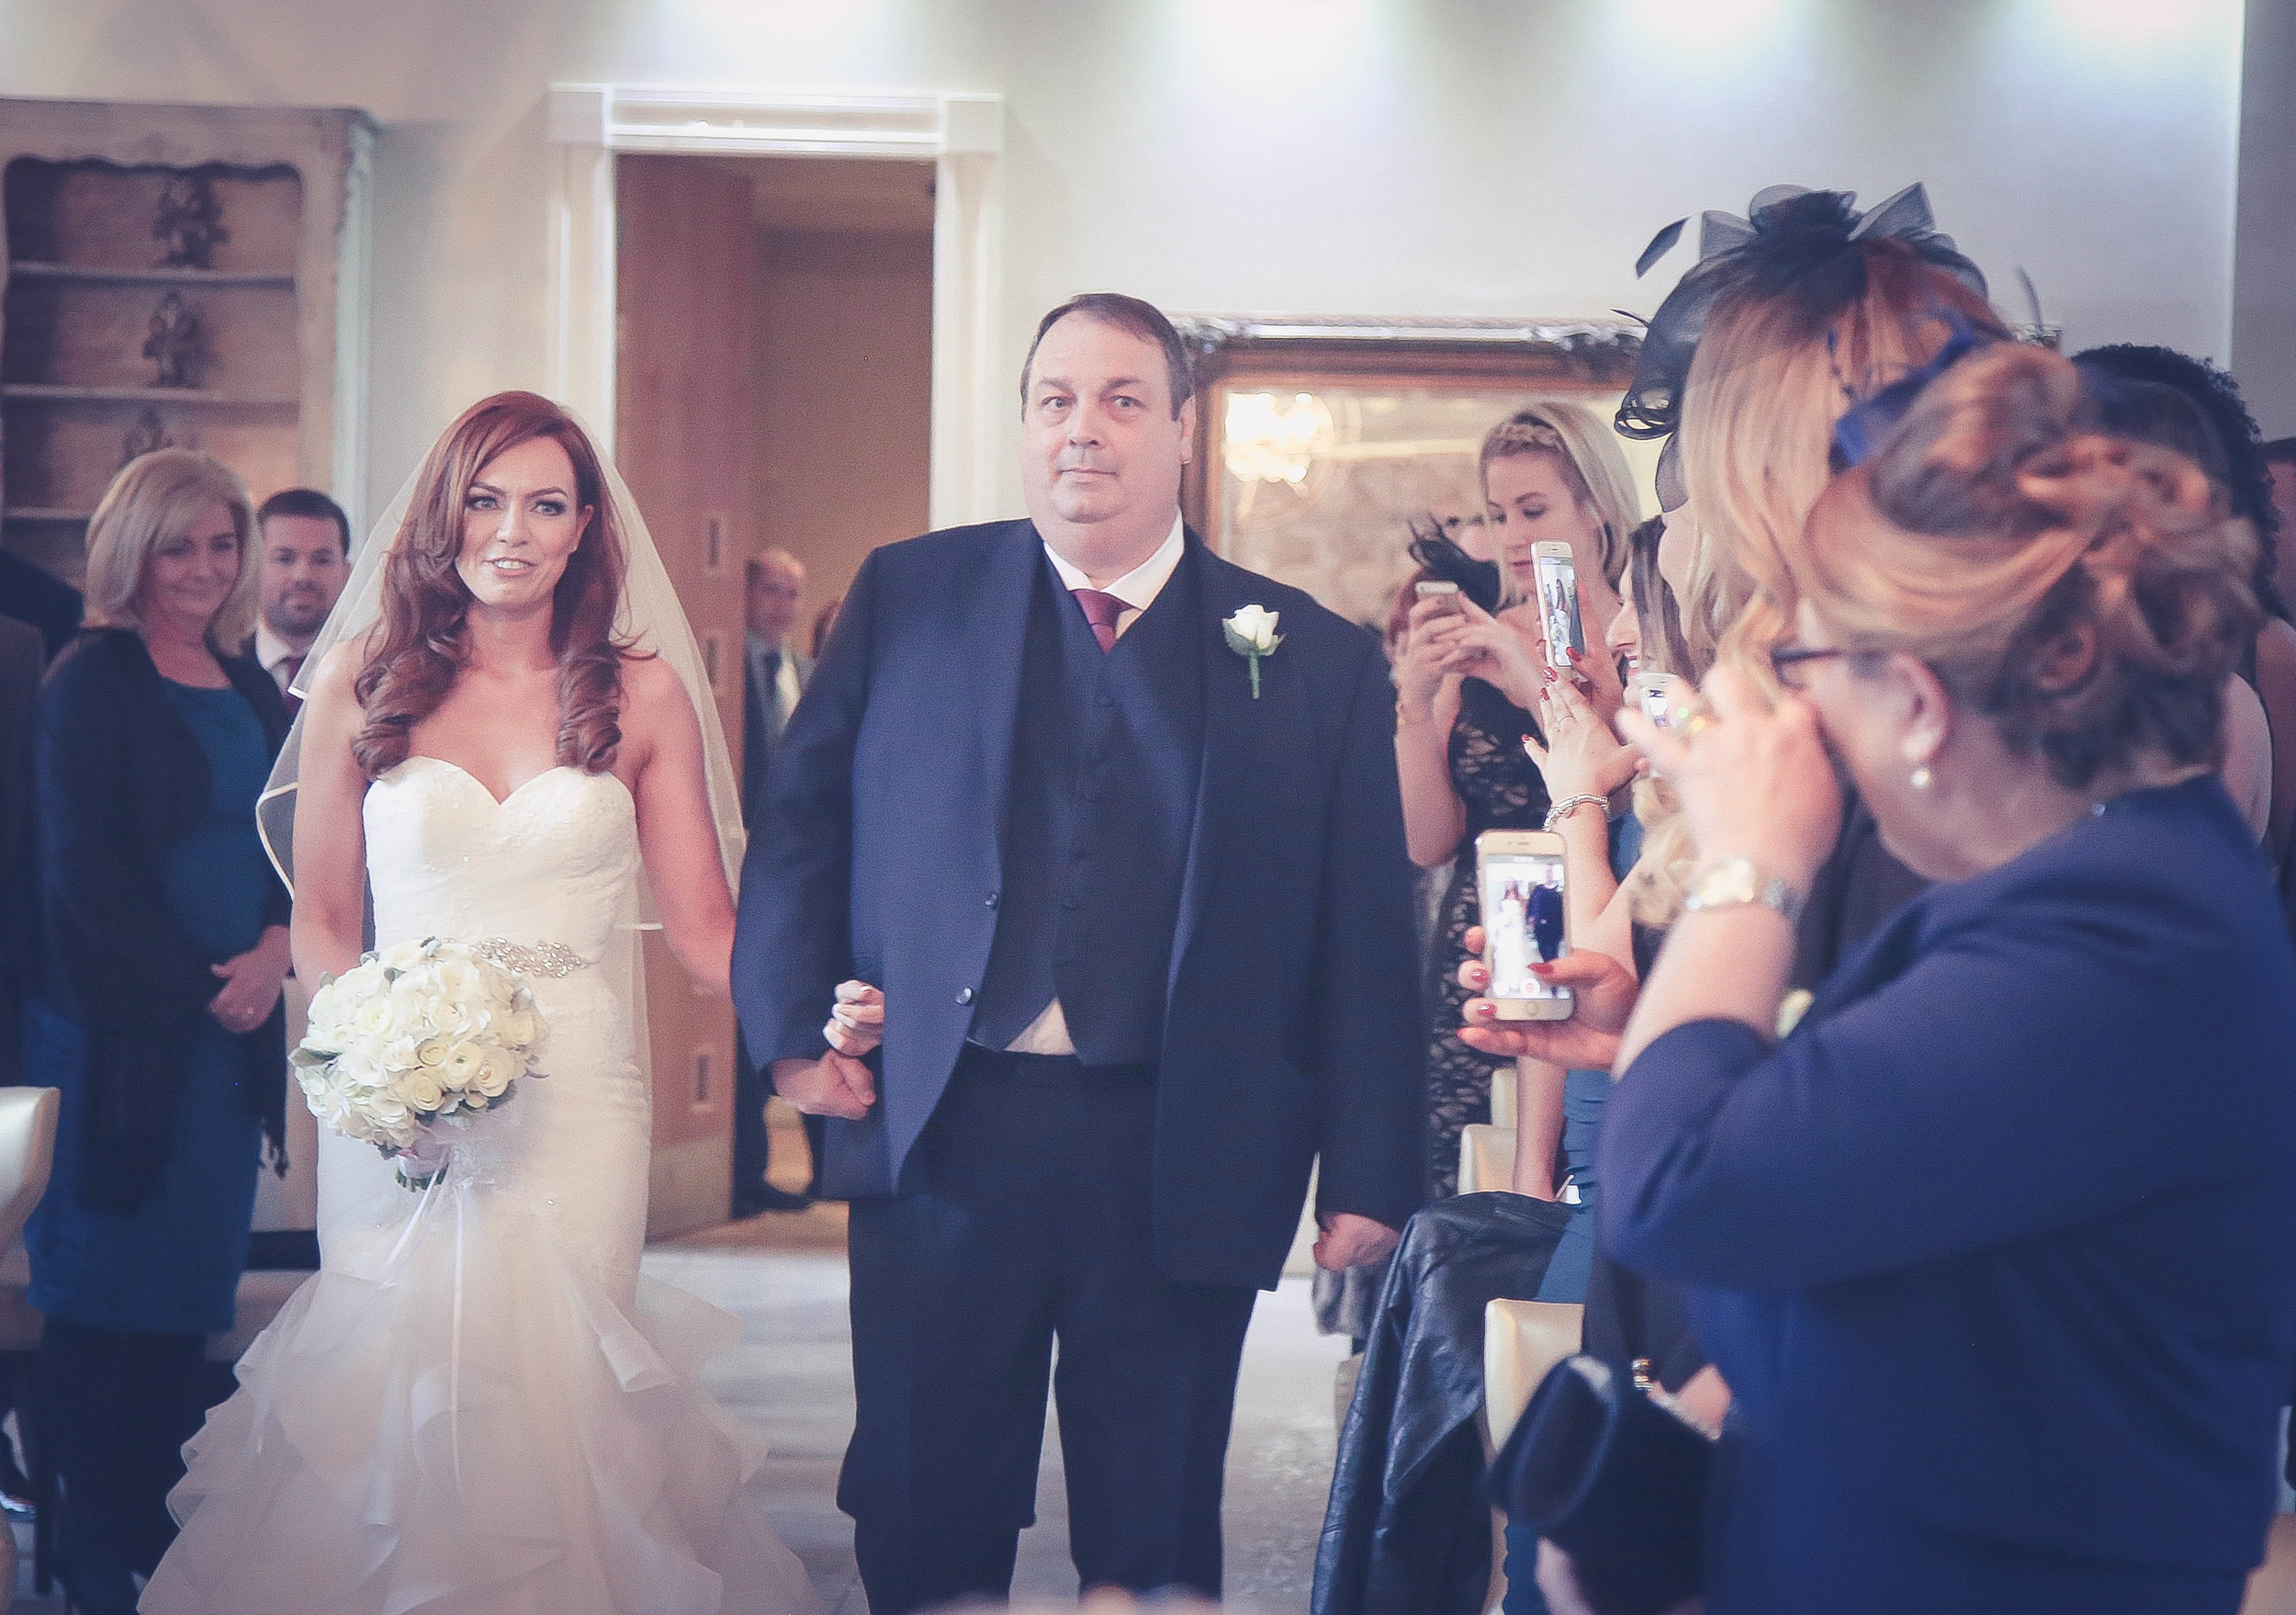 Weddings at the shankly hotel liverpool-60.jpg